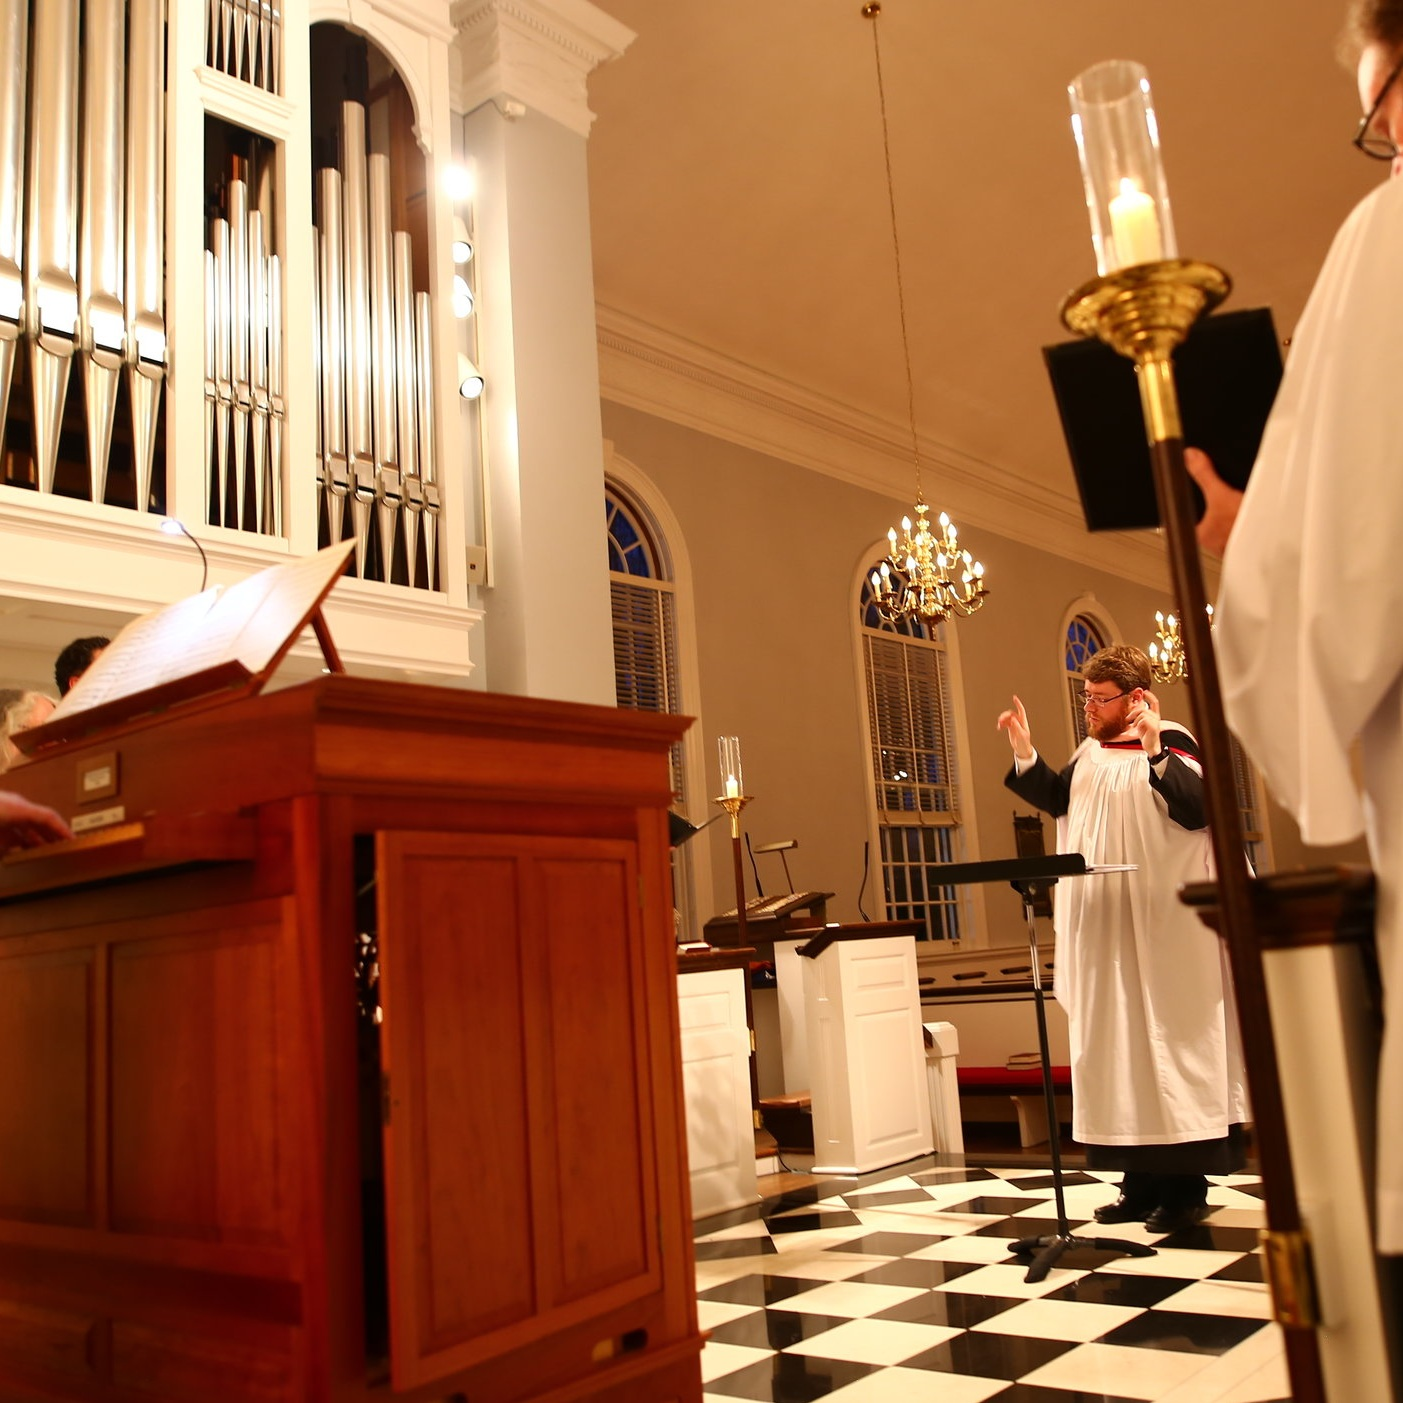 At a service of Choral Evensong at St. Peter's Episcopal Church, St. Louis, 2017.